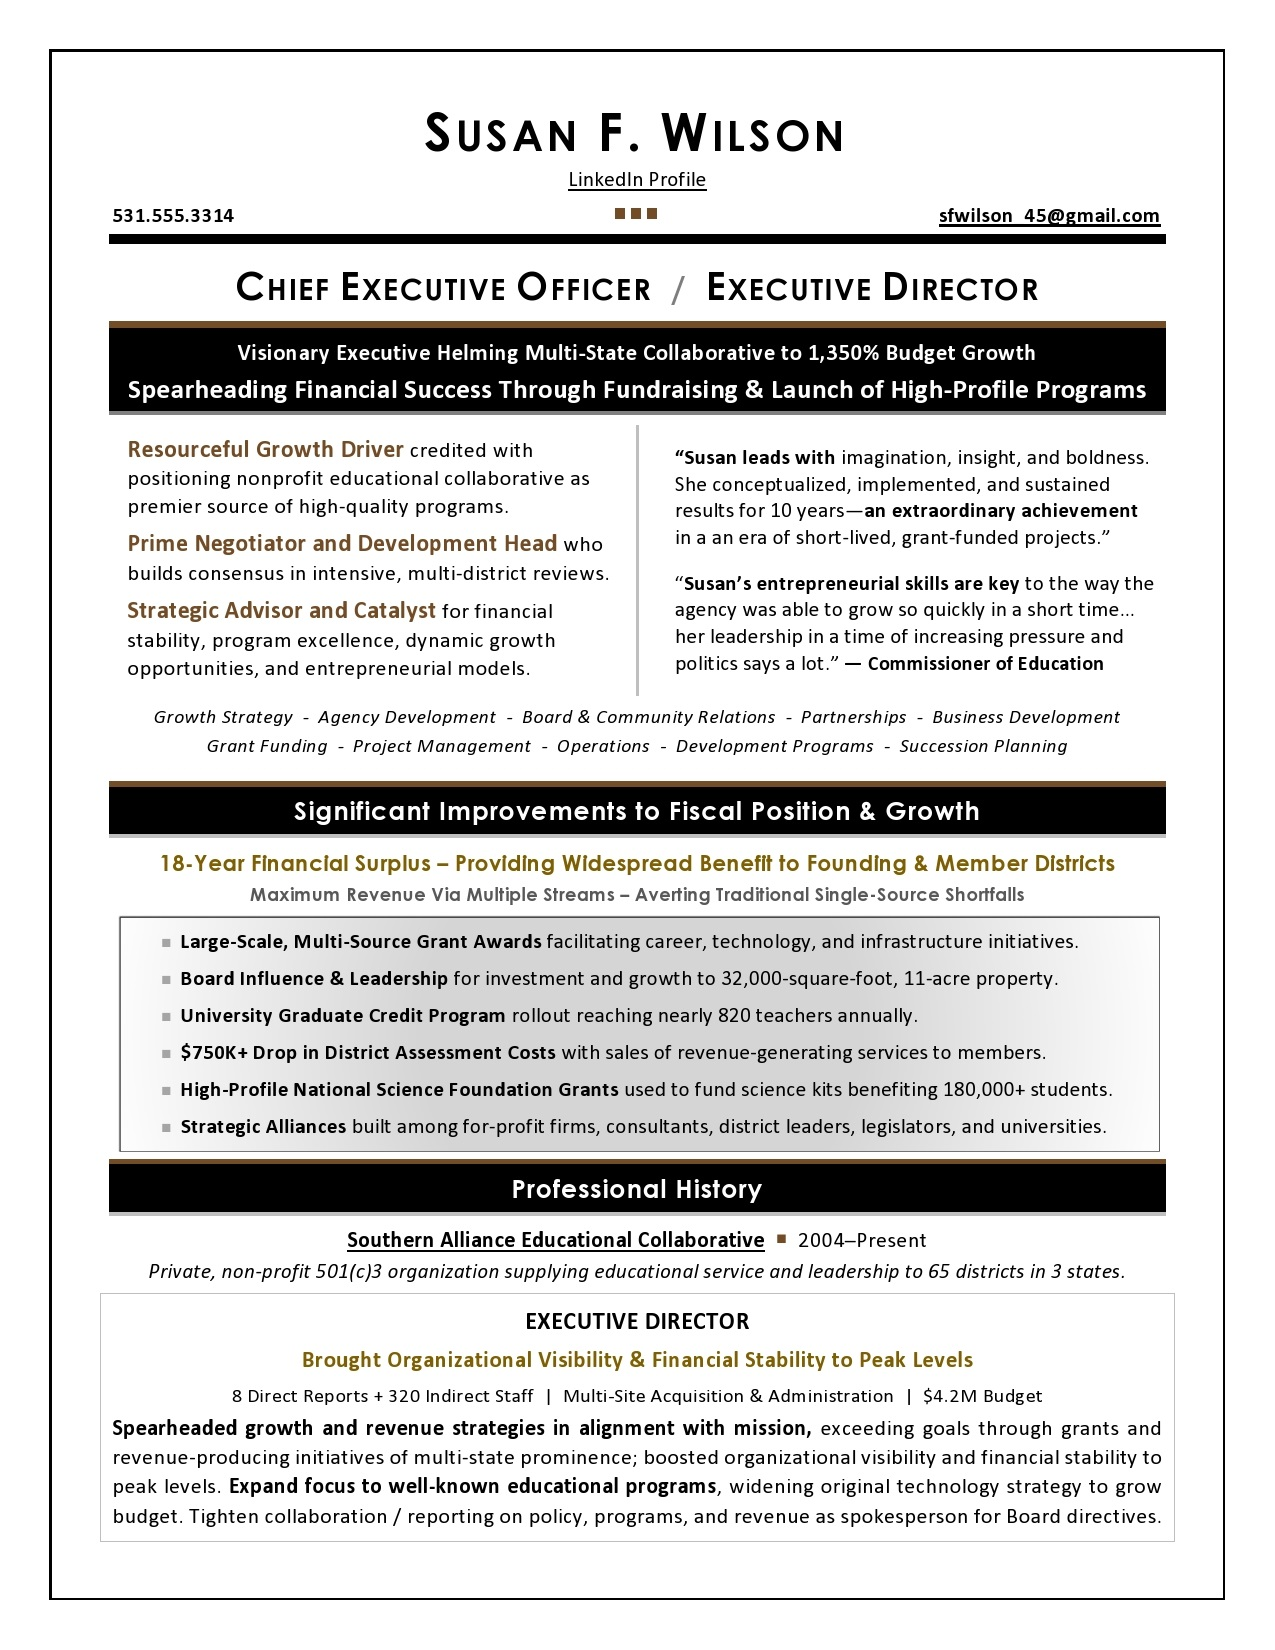 Good Resume Examples For Jobs Executive Resume Samples By Award Winning Writer Laura Smith Proulx